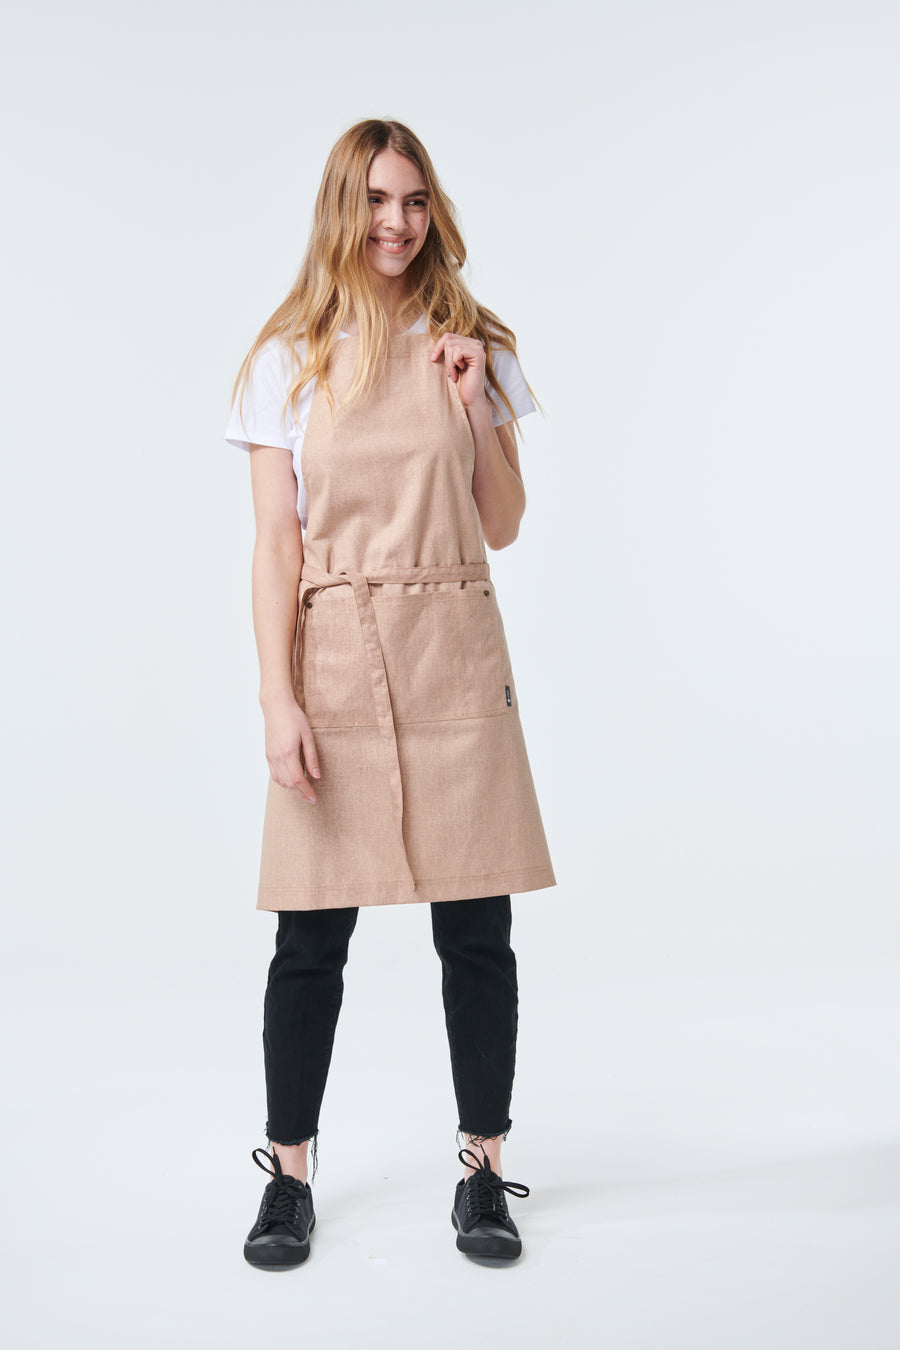 CLEMENTINE BIB Apron with metal trims -  NEW COLOUR 'Tobacco'